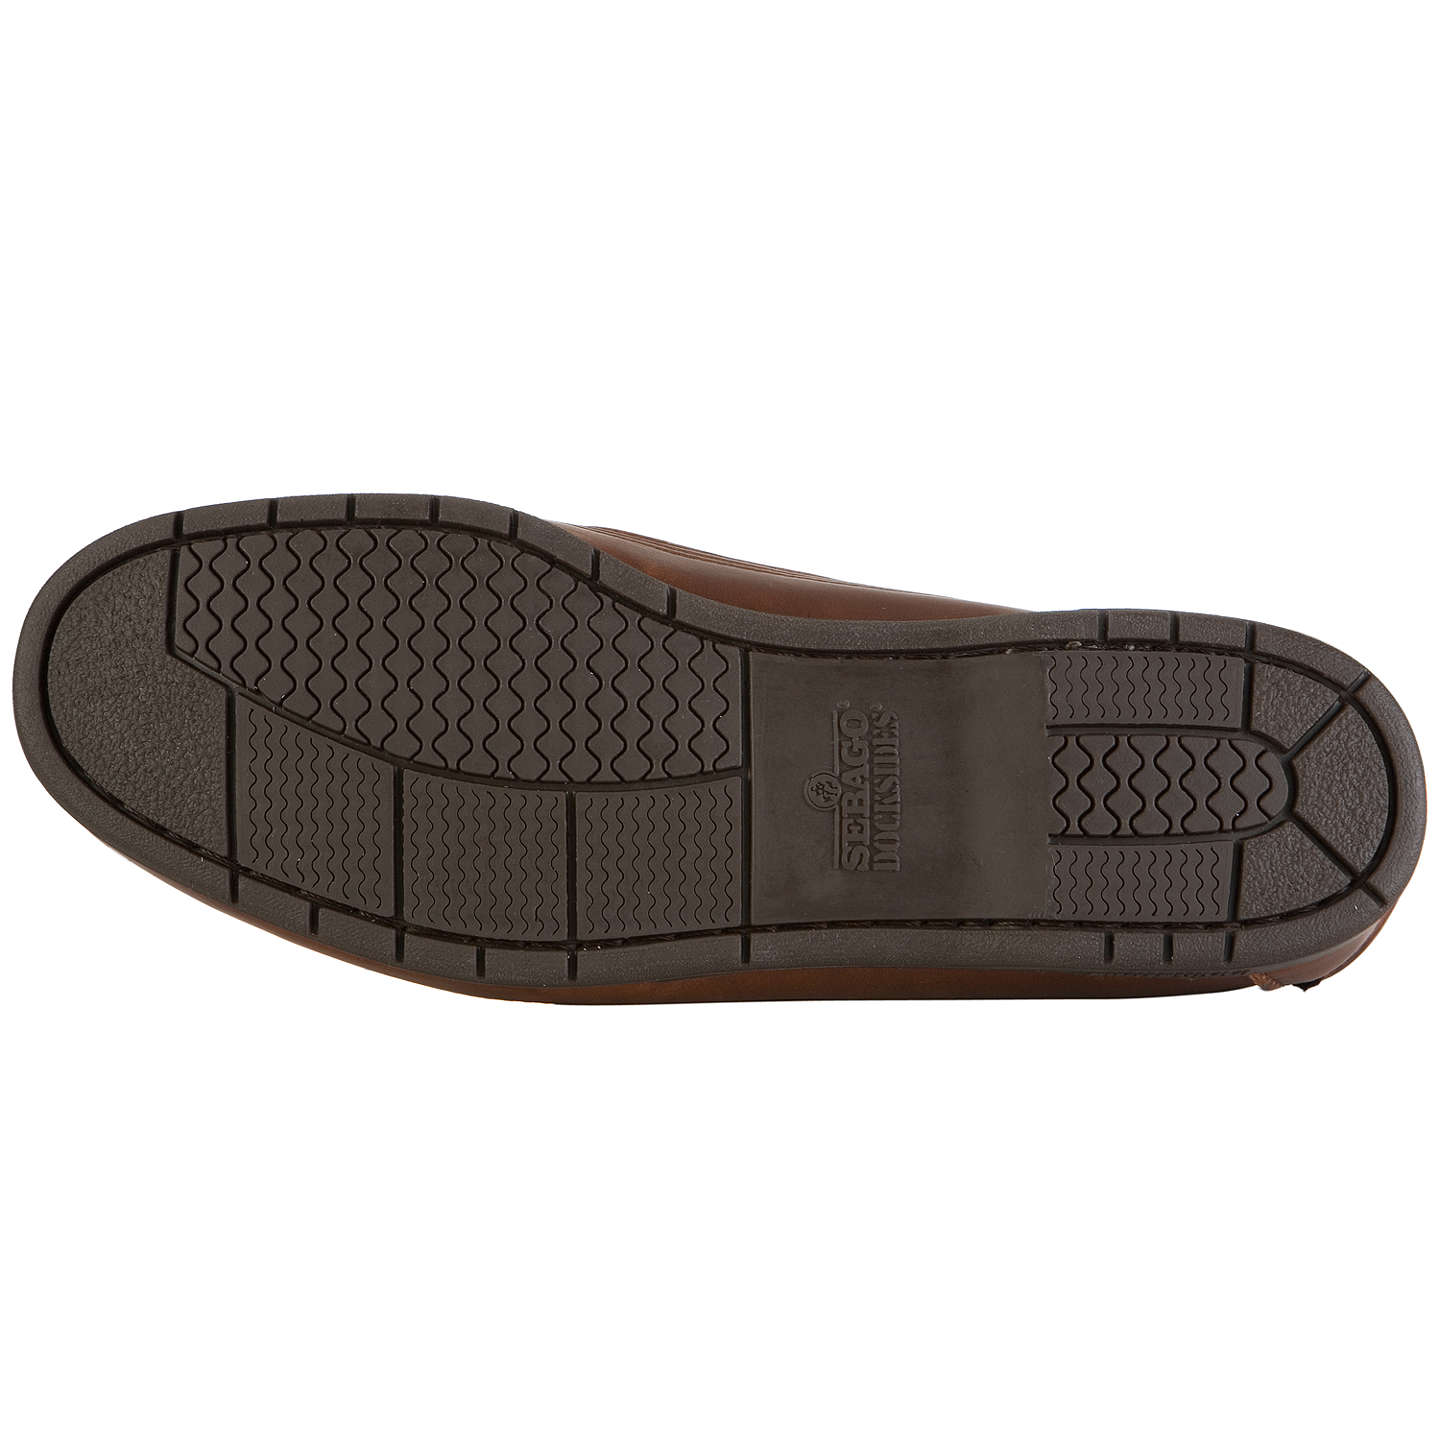 BuySebago Schooner Leather Boat Shoes, Brown, 7 Online at johnlewis.com